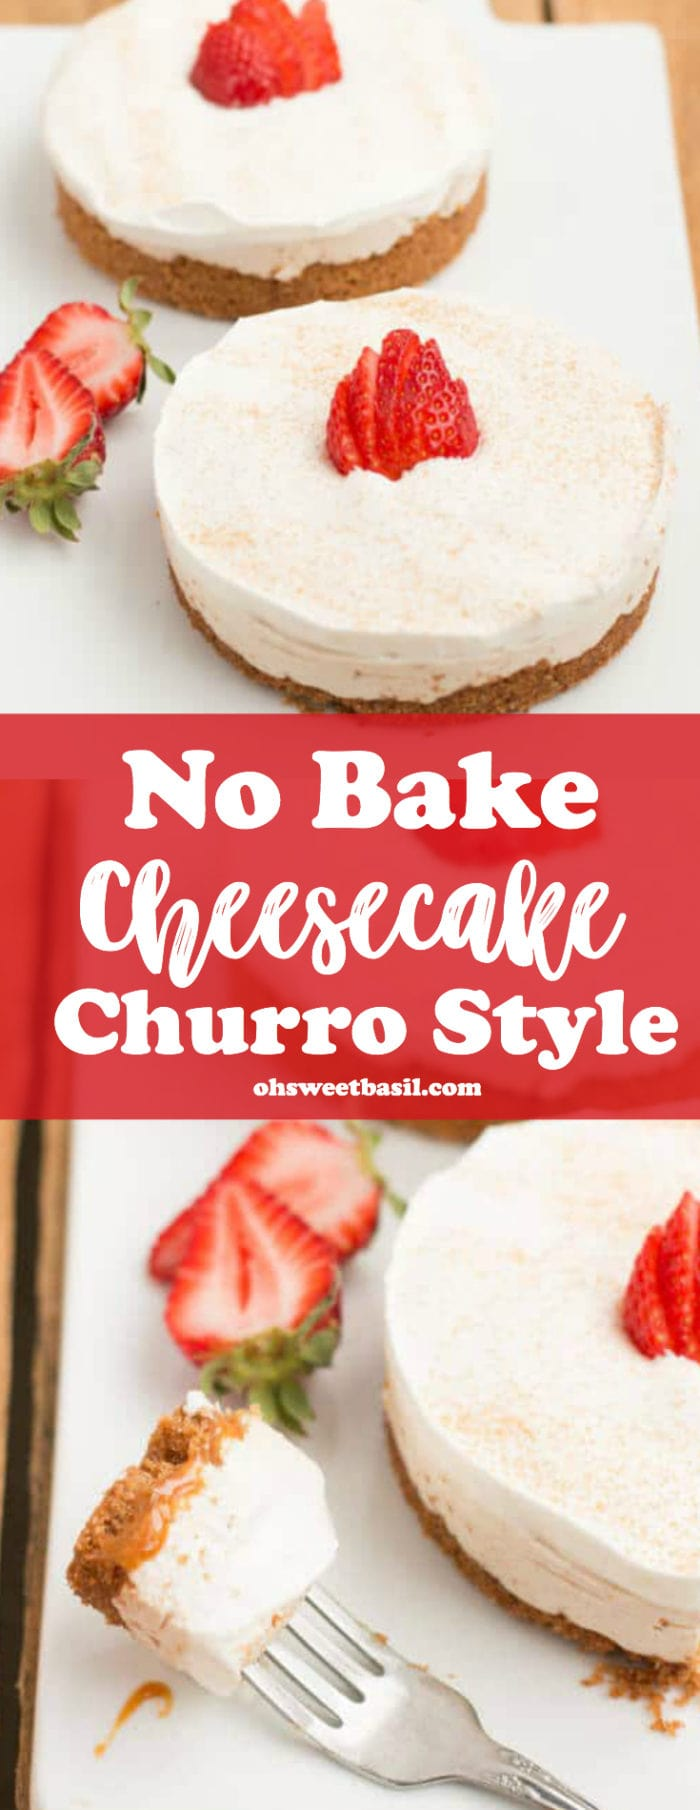 A delicious No Bake Churro Cheesecake with a strawberry on top